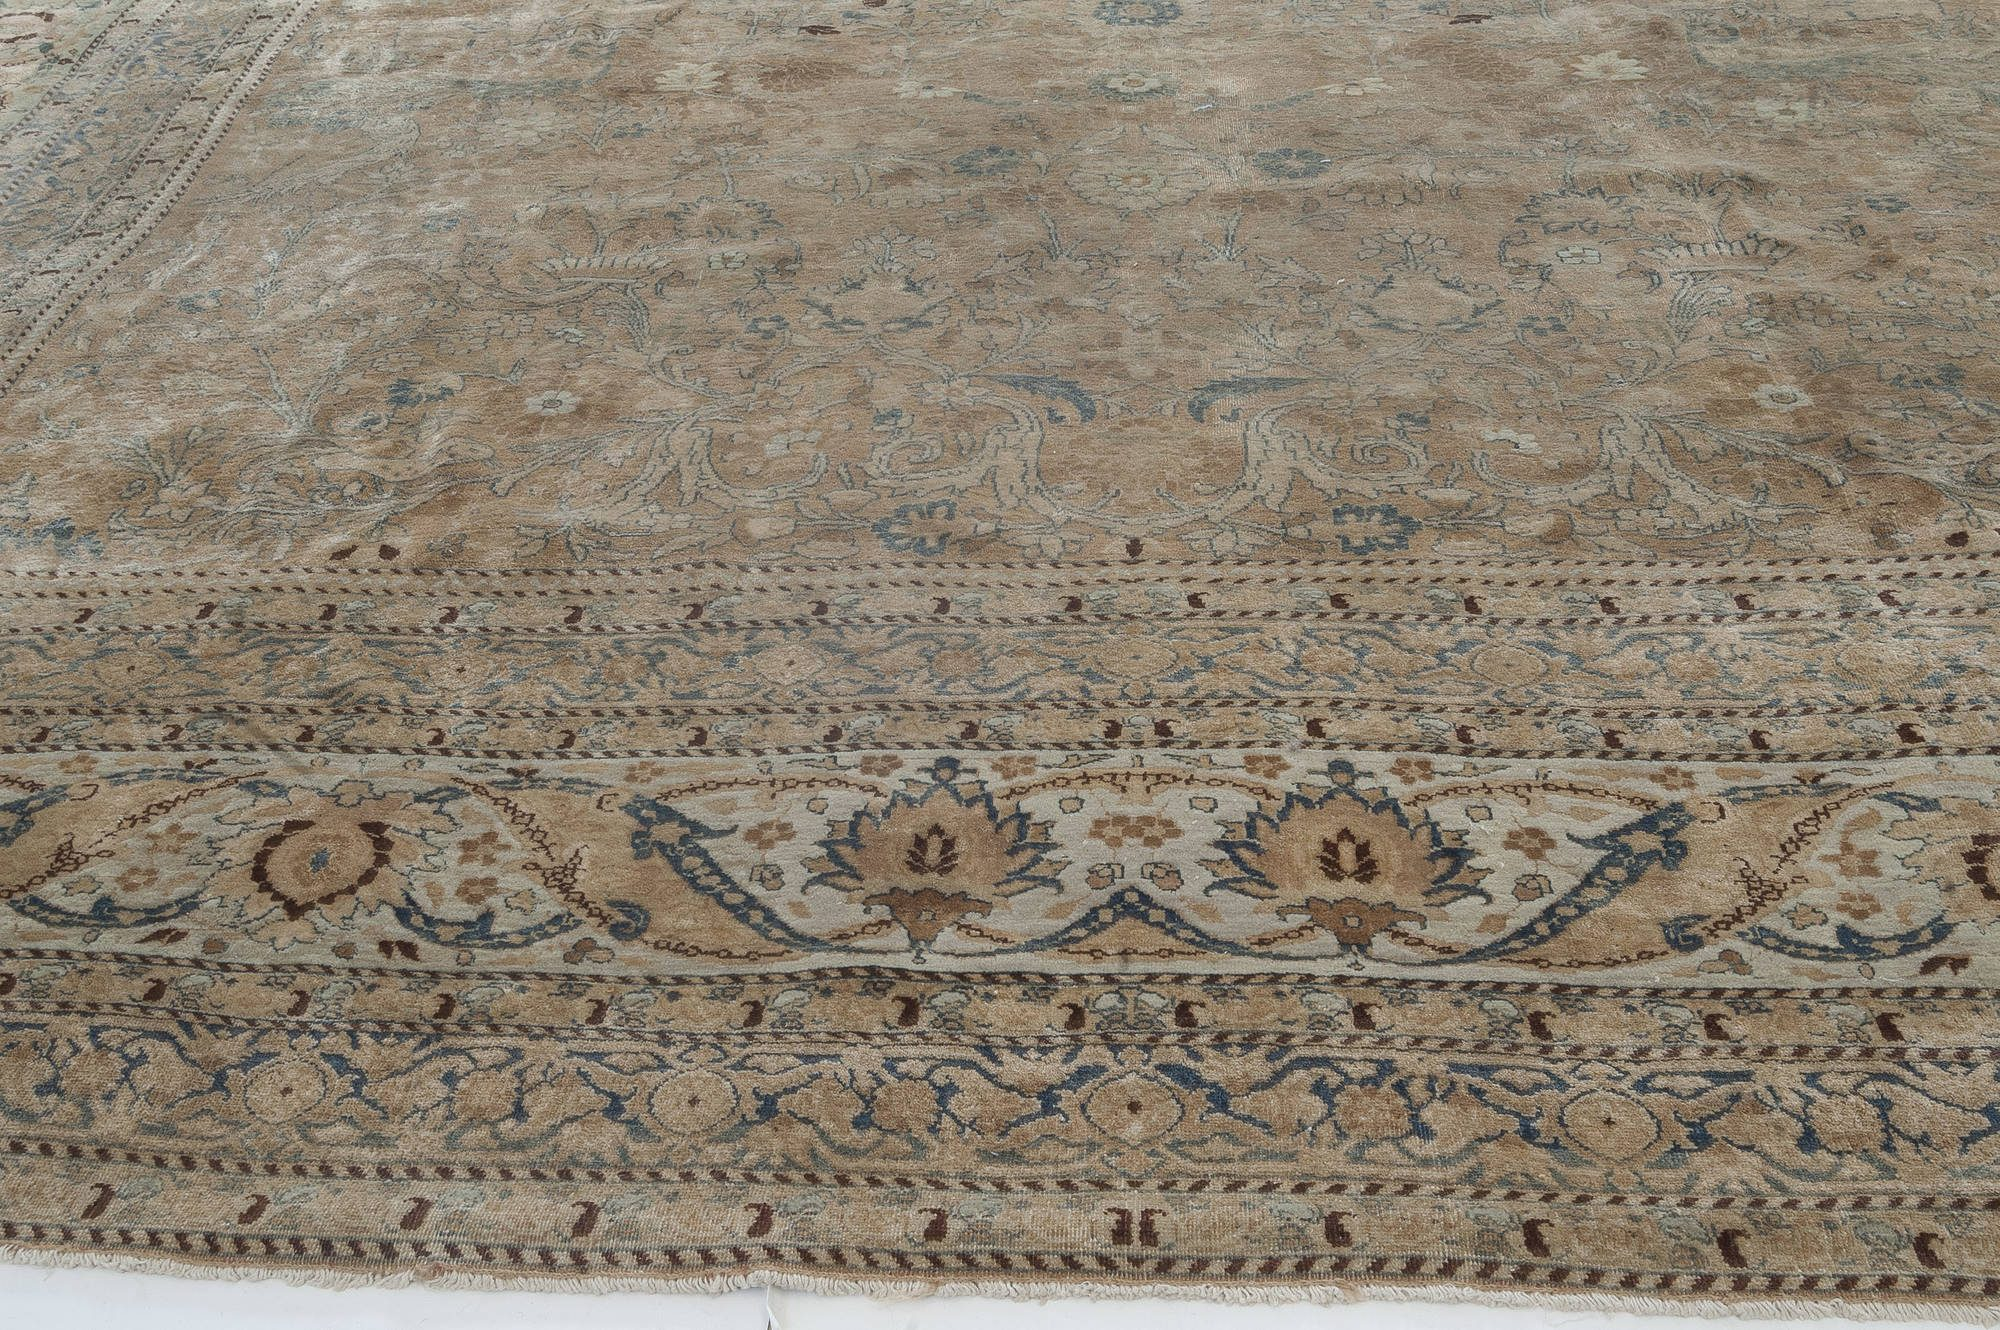 Antique Persian Meshad Carpet BB2724